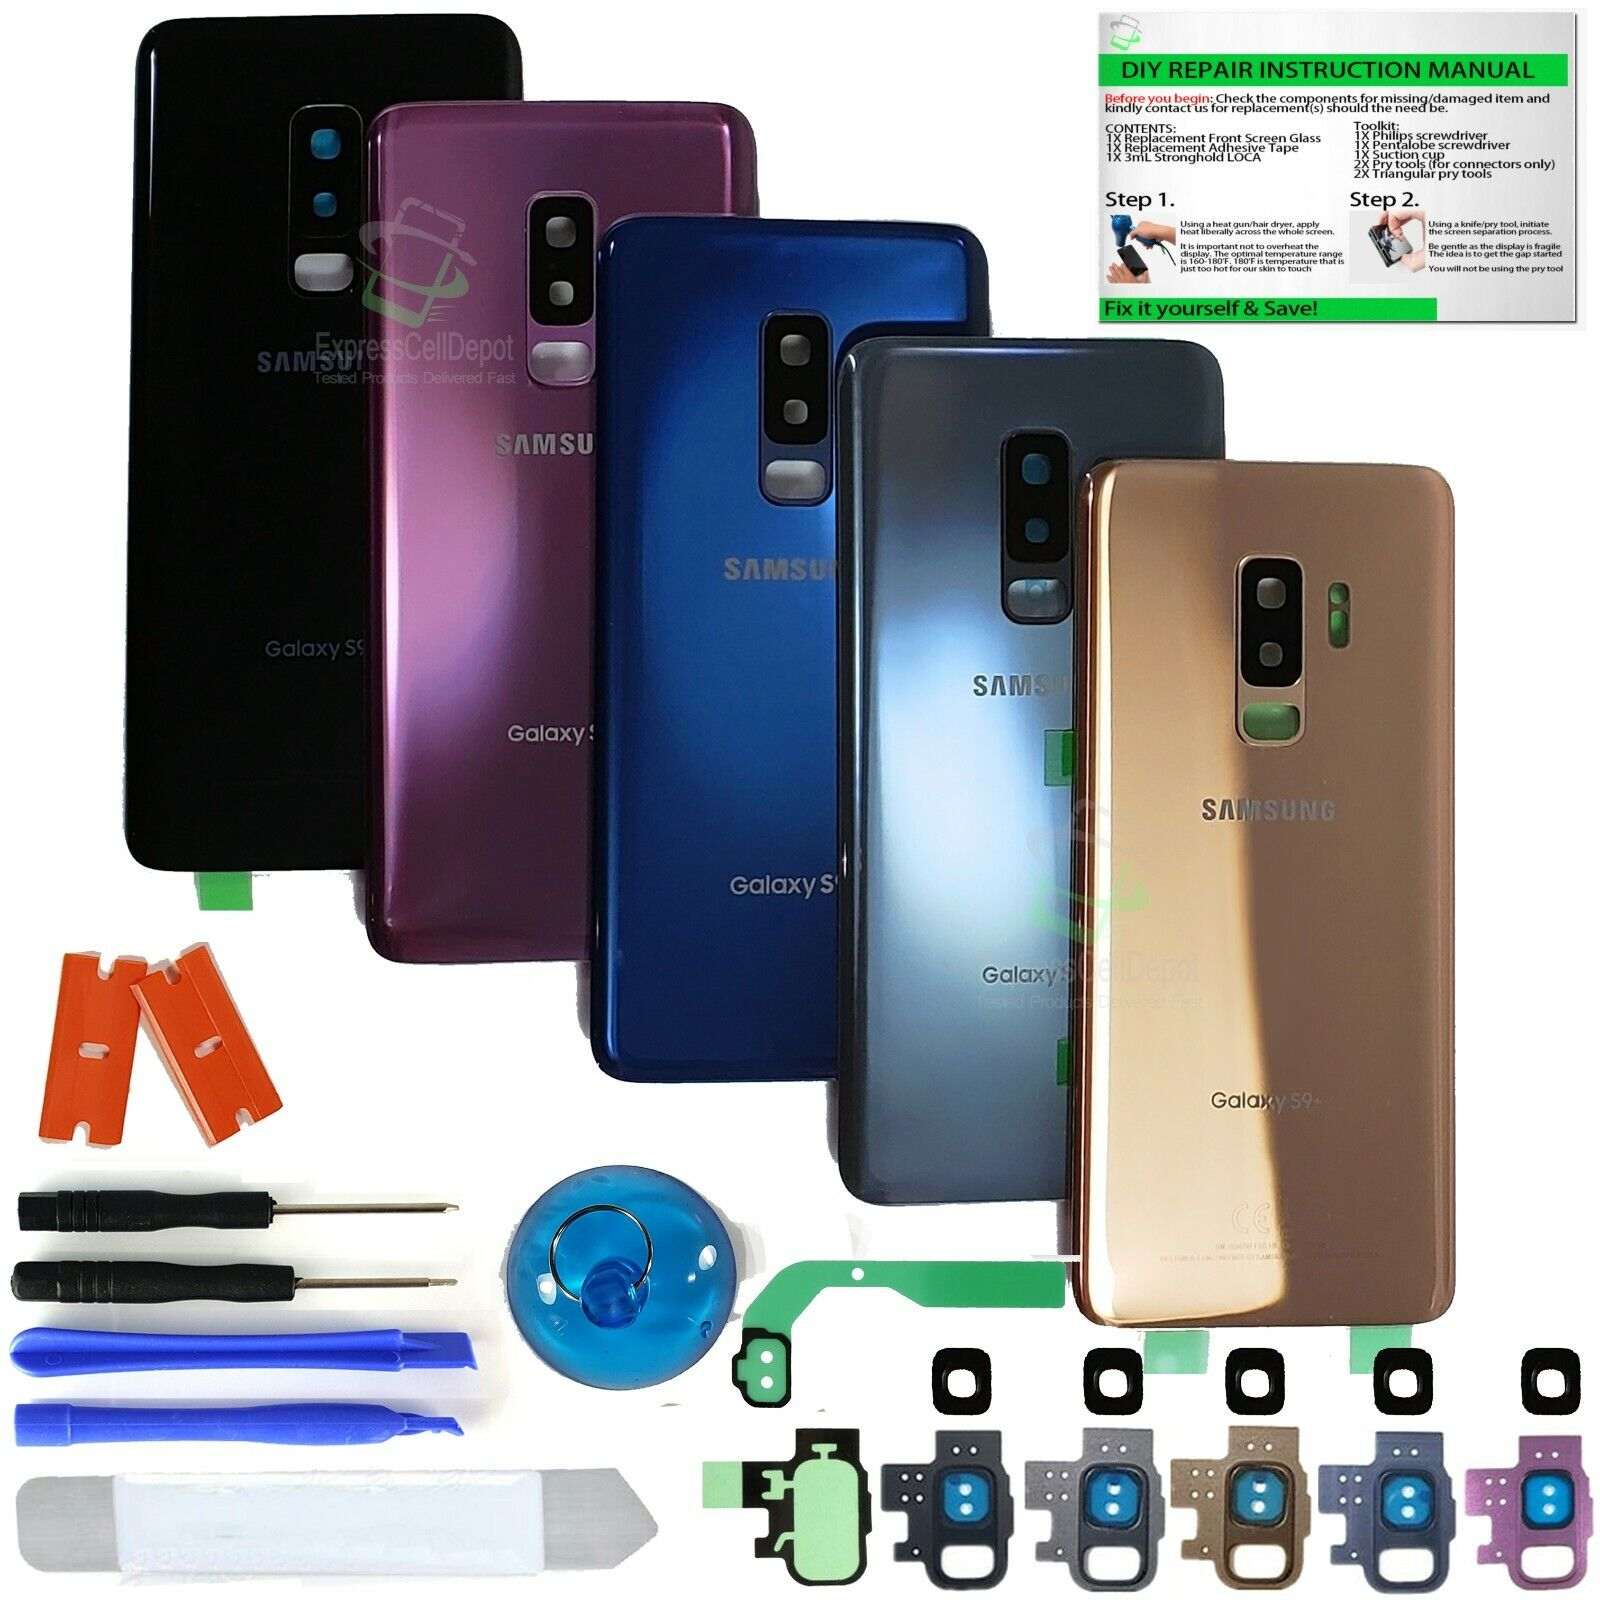 Back Glass Replacement Kit for Samsung Galaxy S9/S9+ w.CE Pr